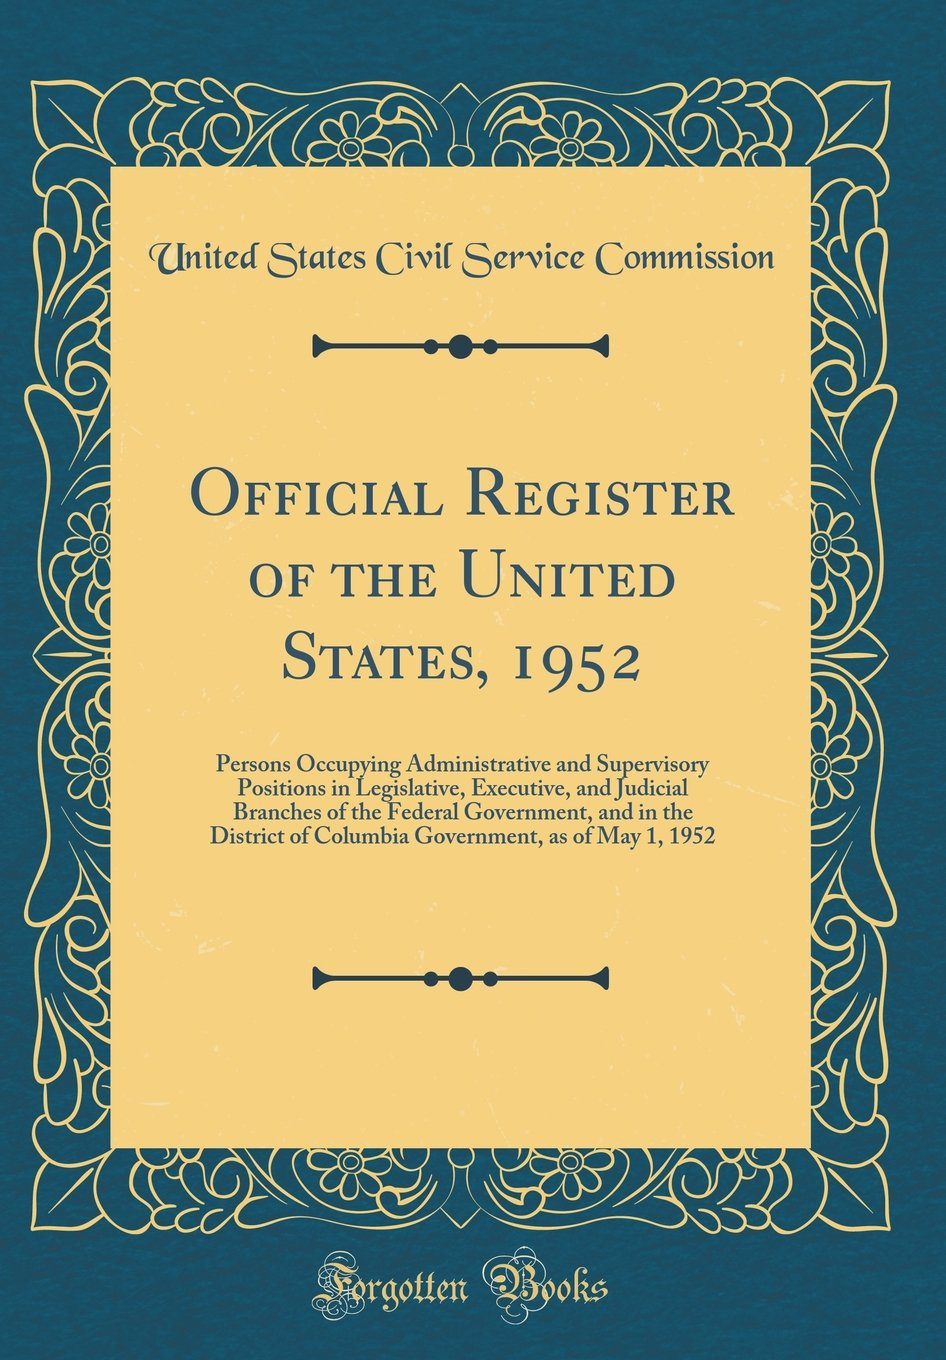 Official Register of the United States, 1952: Persons Occupying Administrative and Supervisory Positions in Legislative, Executive, and Judicial ... of Columbia Government, as of May 1, 1952 pdf